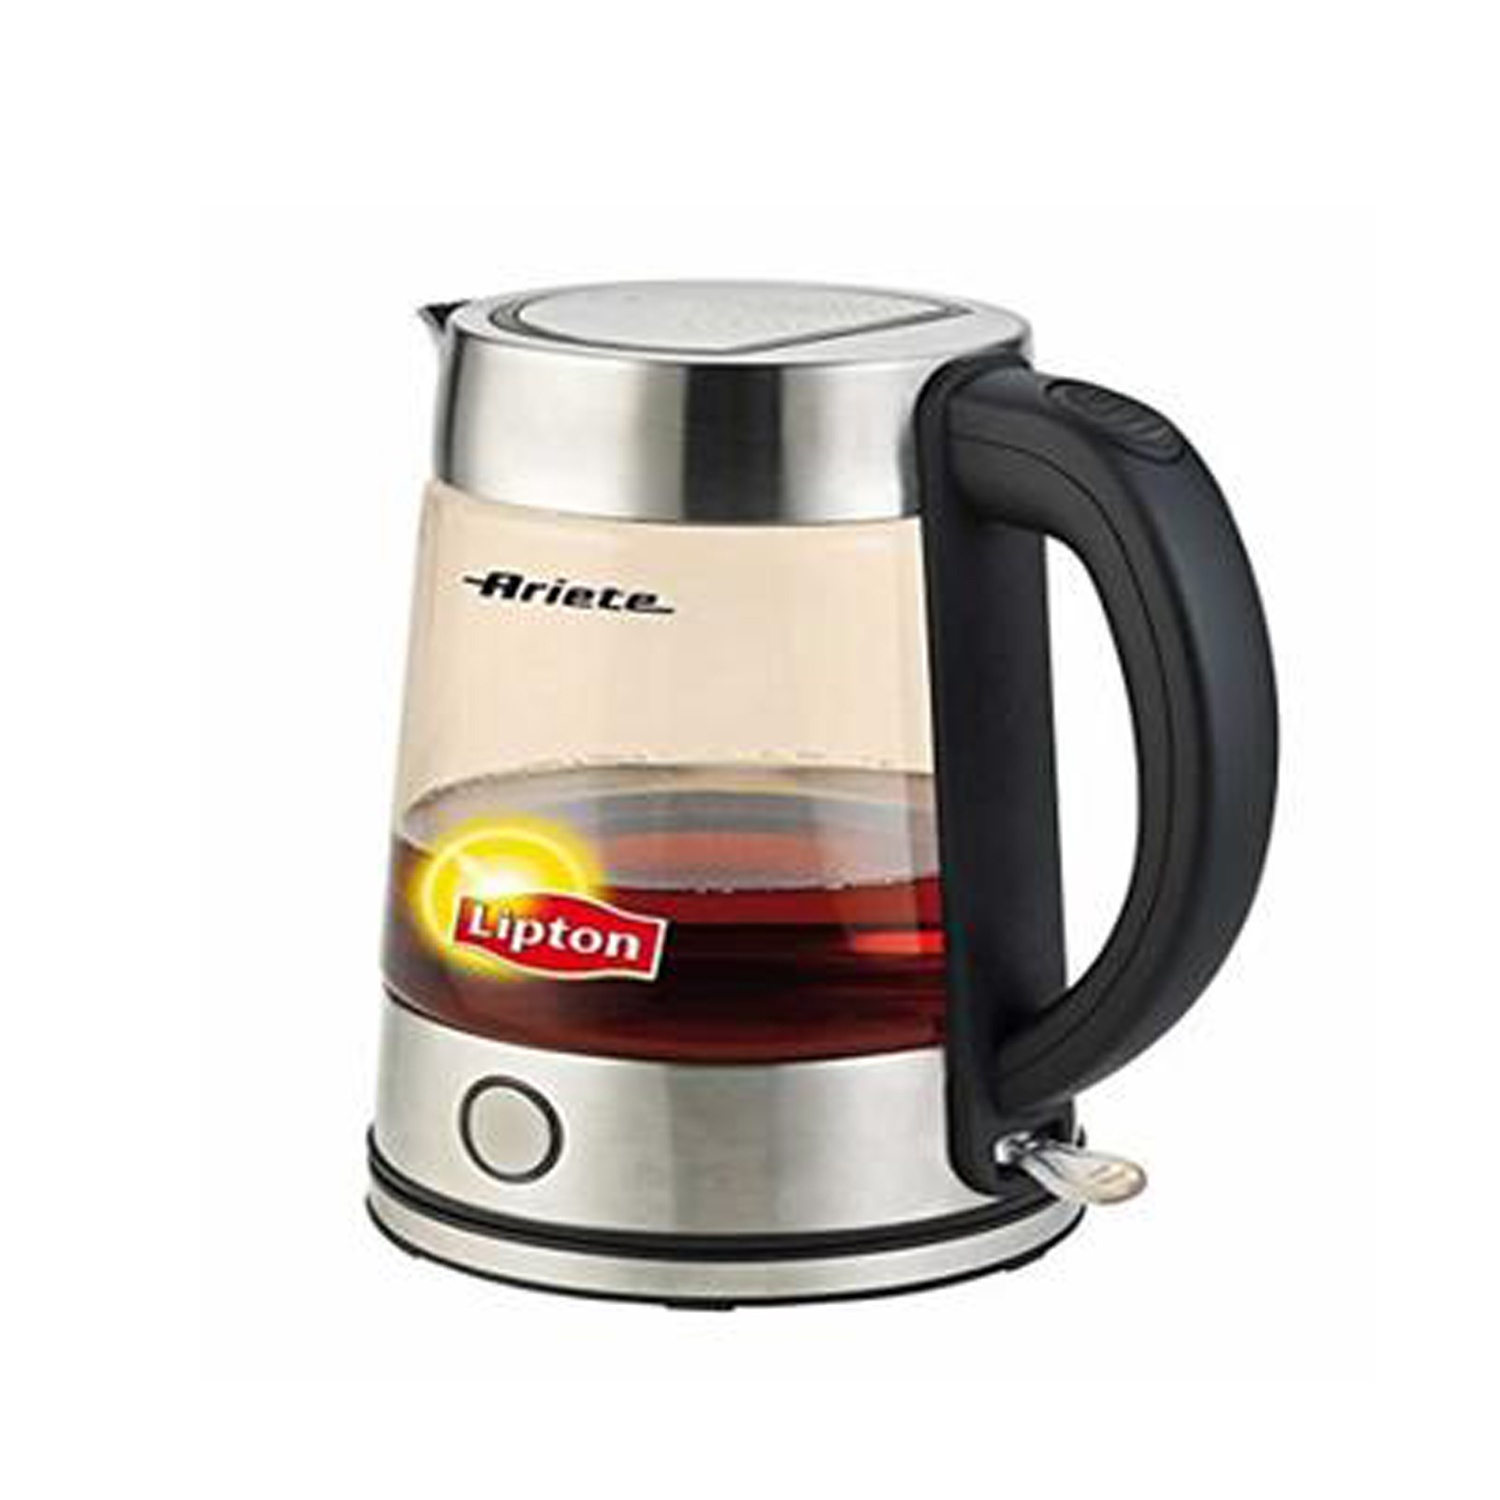 Ariete Lipton 2872 Cordless Electric Glass Tea Kettle